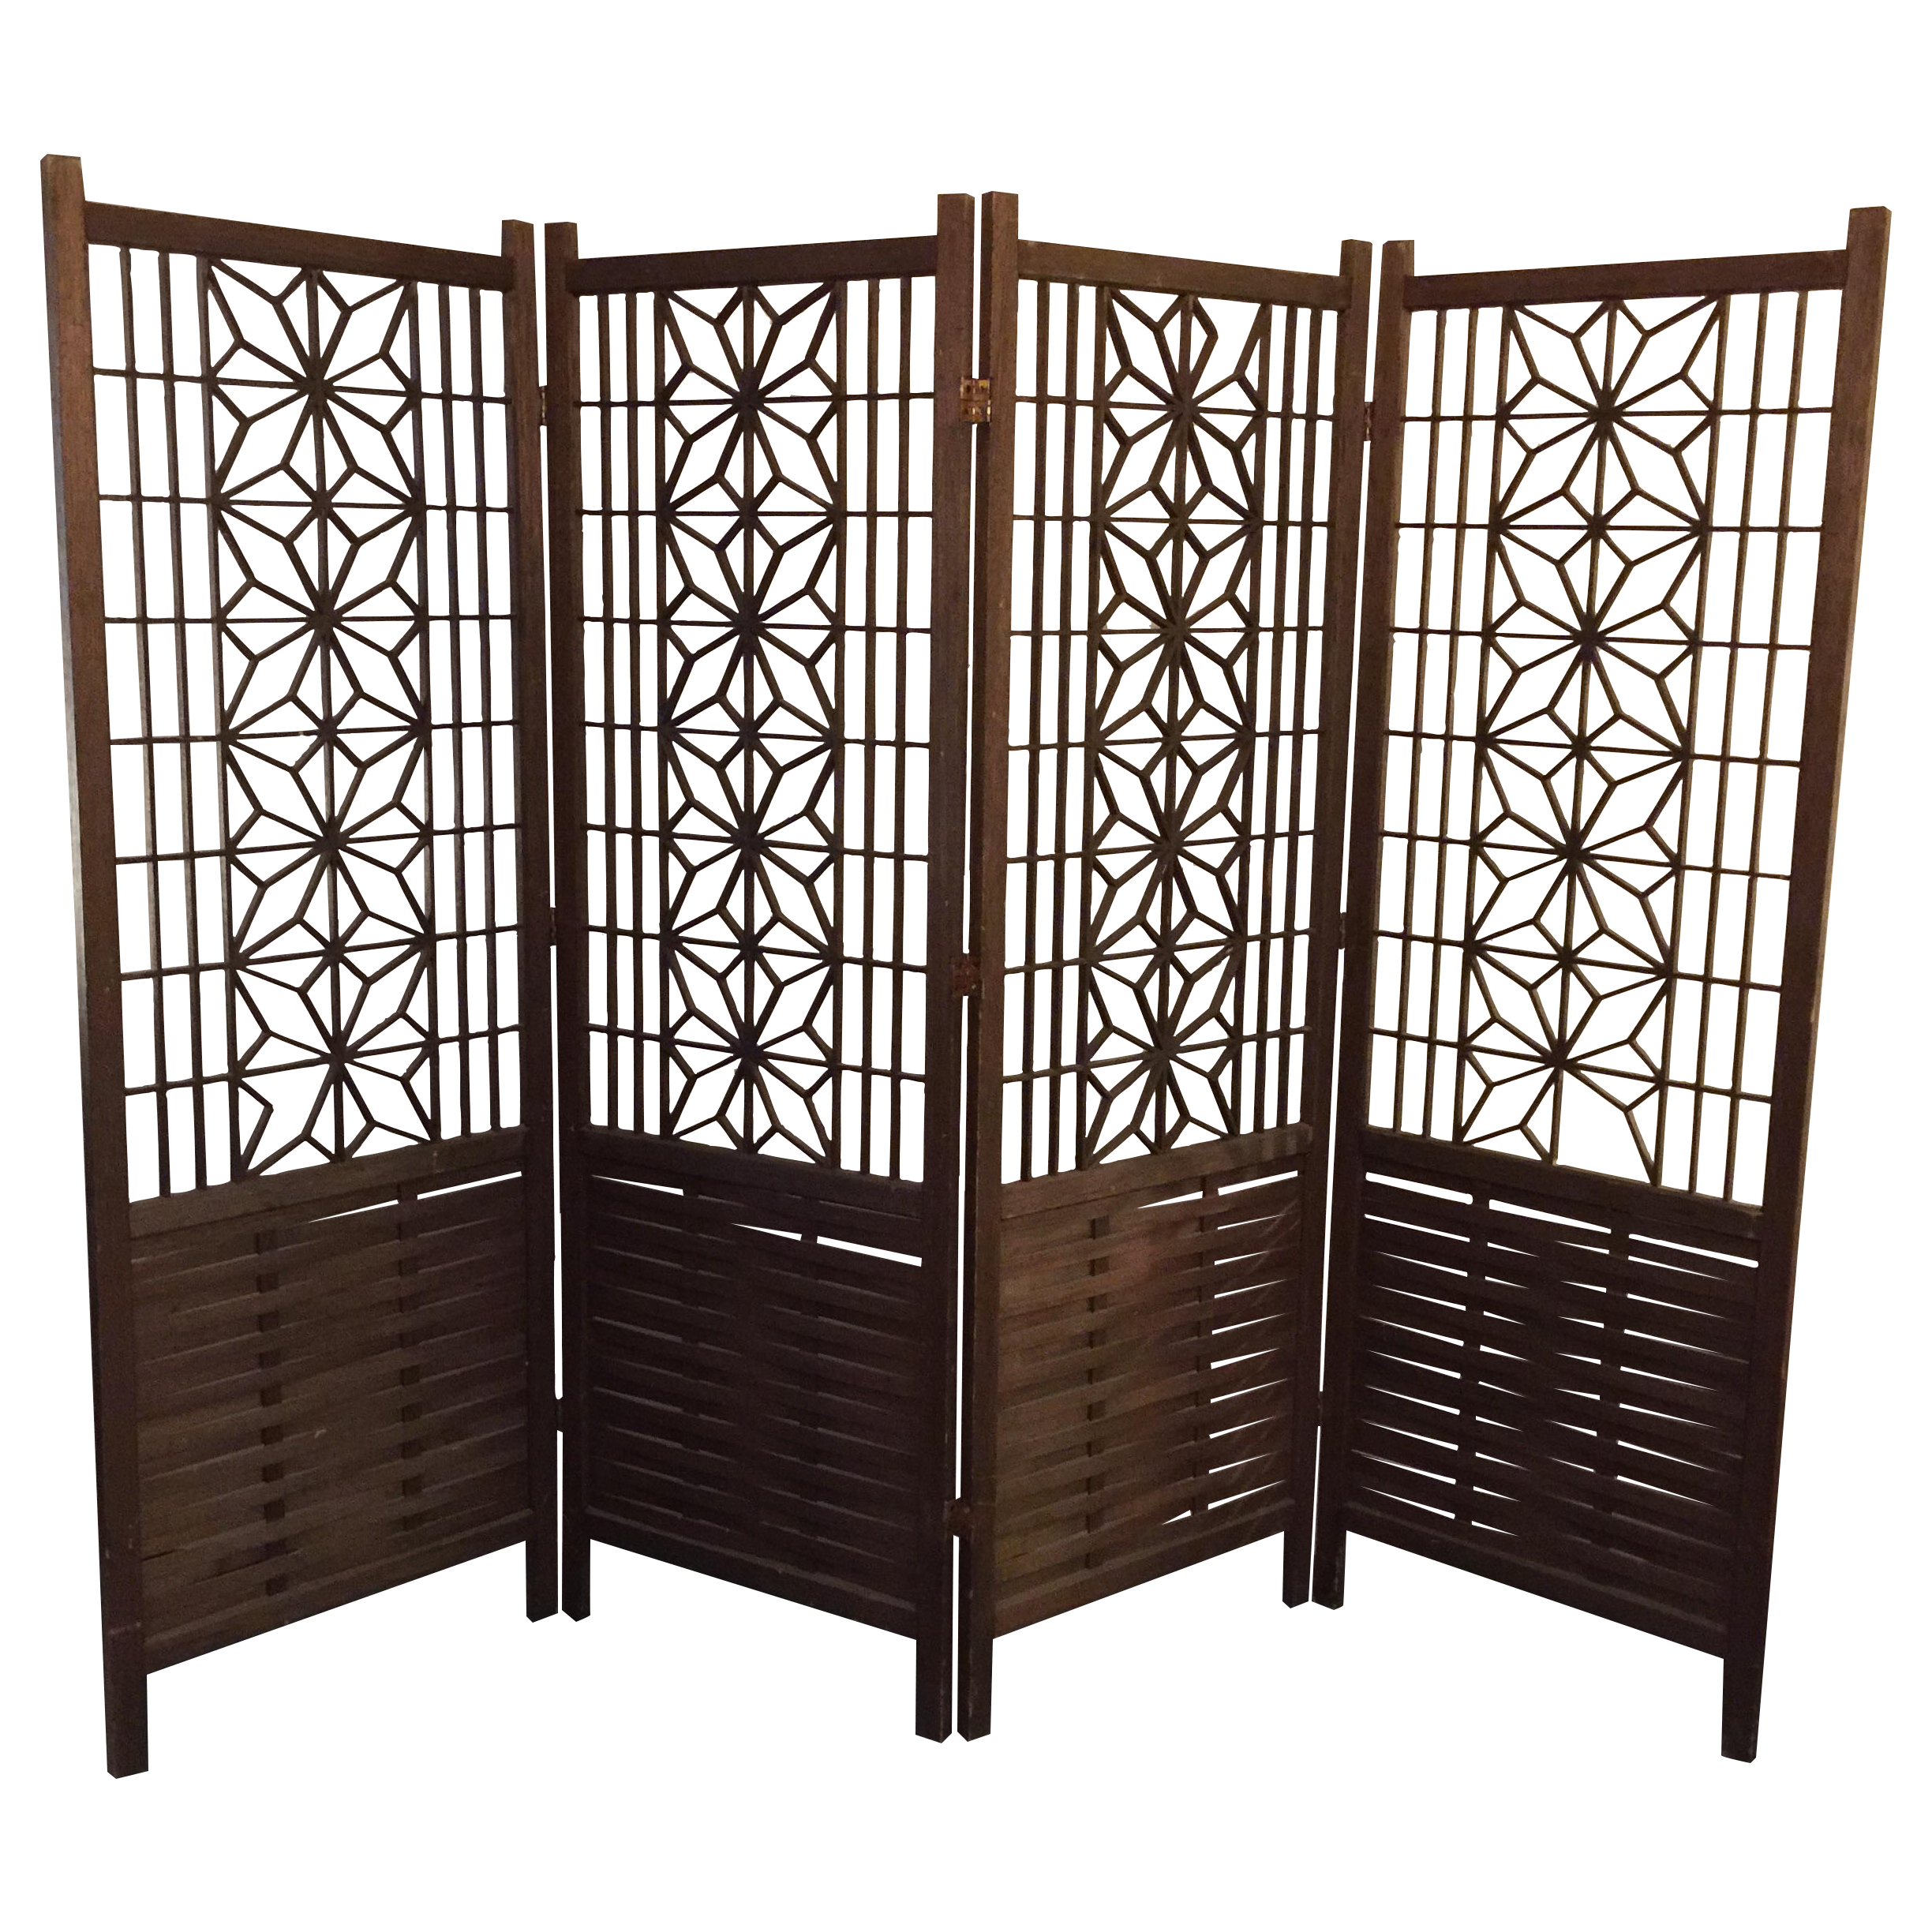 master room frame cfm panel product hayneedle iron photo wrought memories rosewood divider